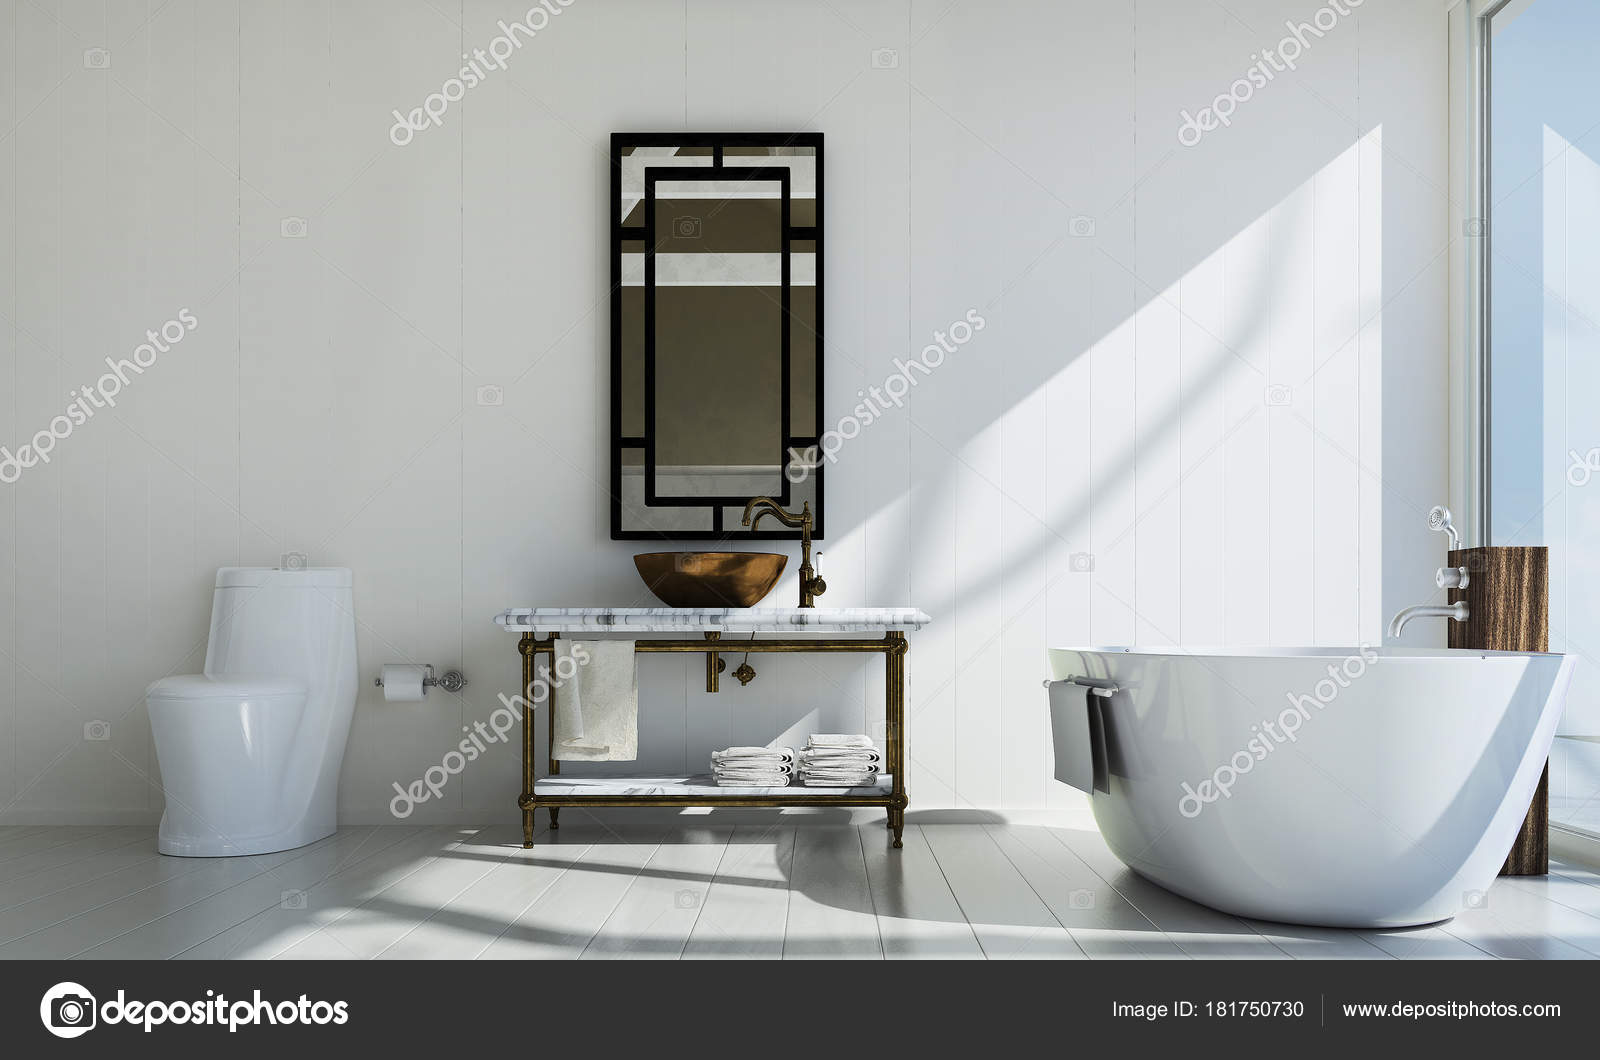 Impressive Luxus Bad Reference Of Das Und Jacuzzi Interieur Design Idee Konzept